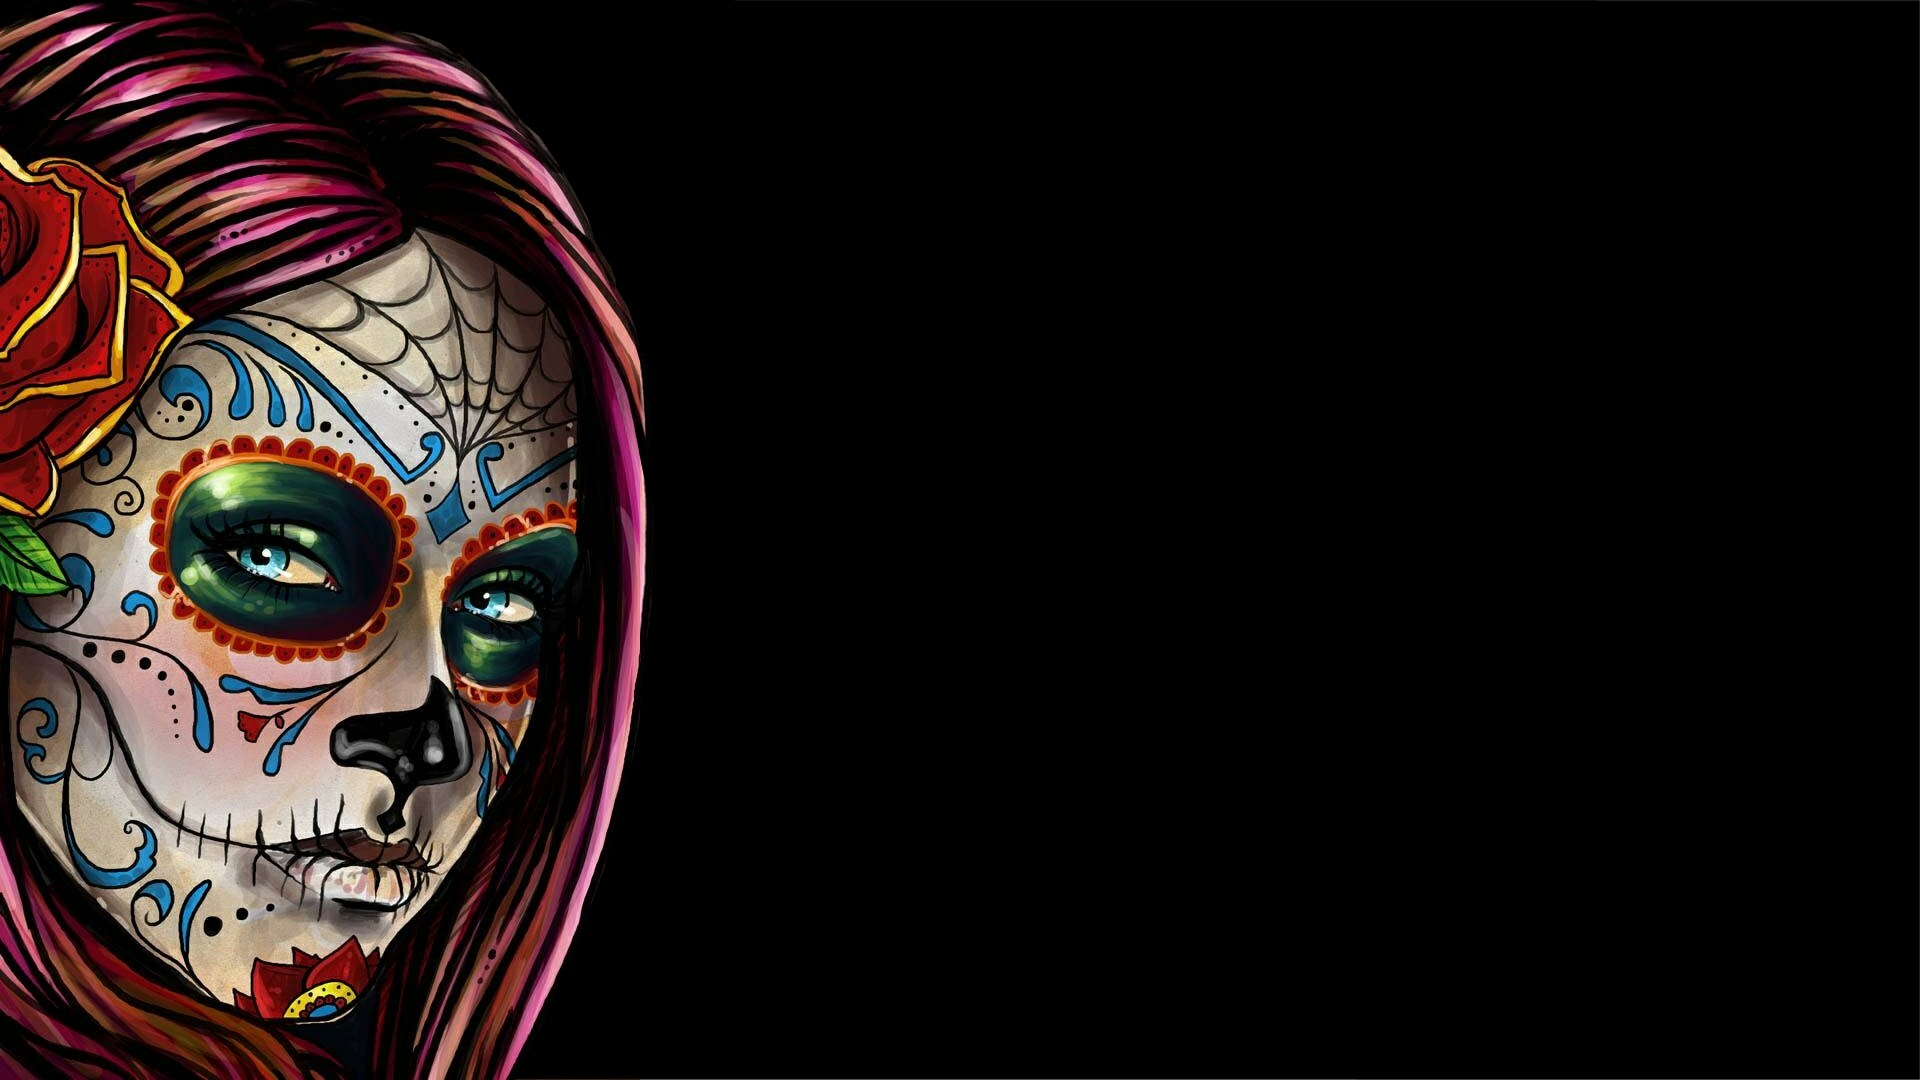 Awesome Cute Skull Wallpapers Skulls Wallpaper 183 ① Download Free Awesome High Resolution